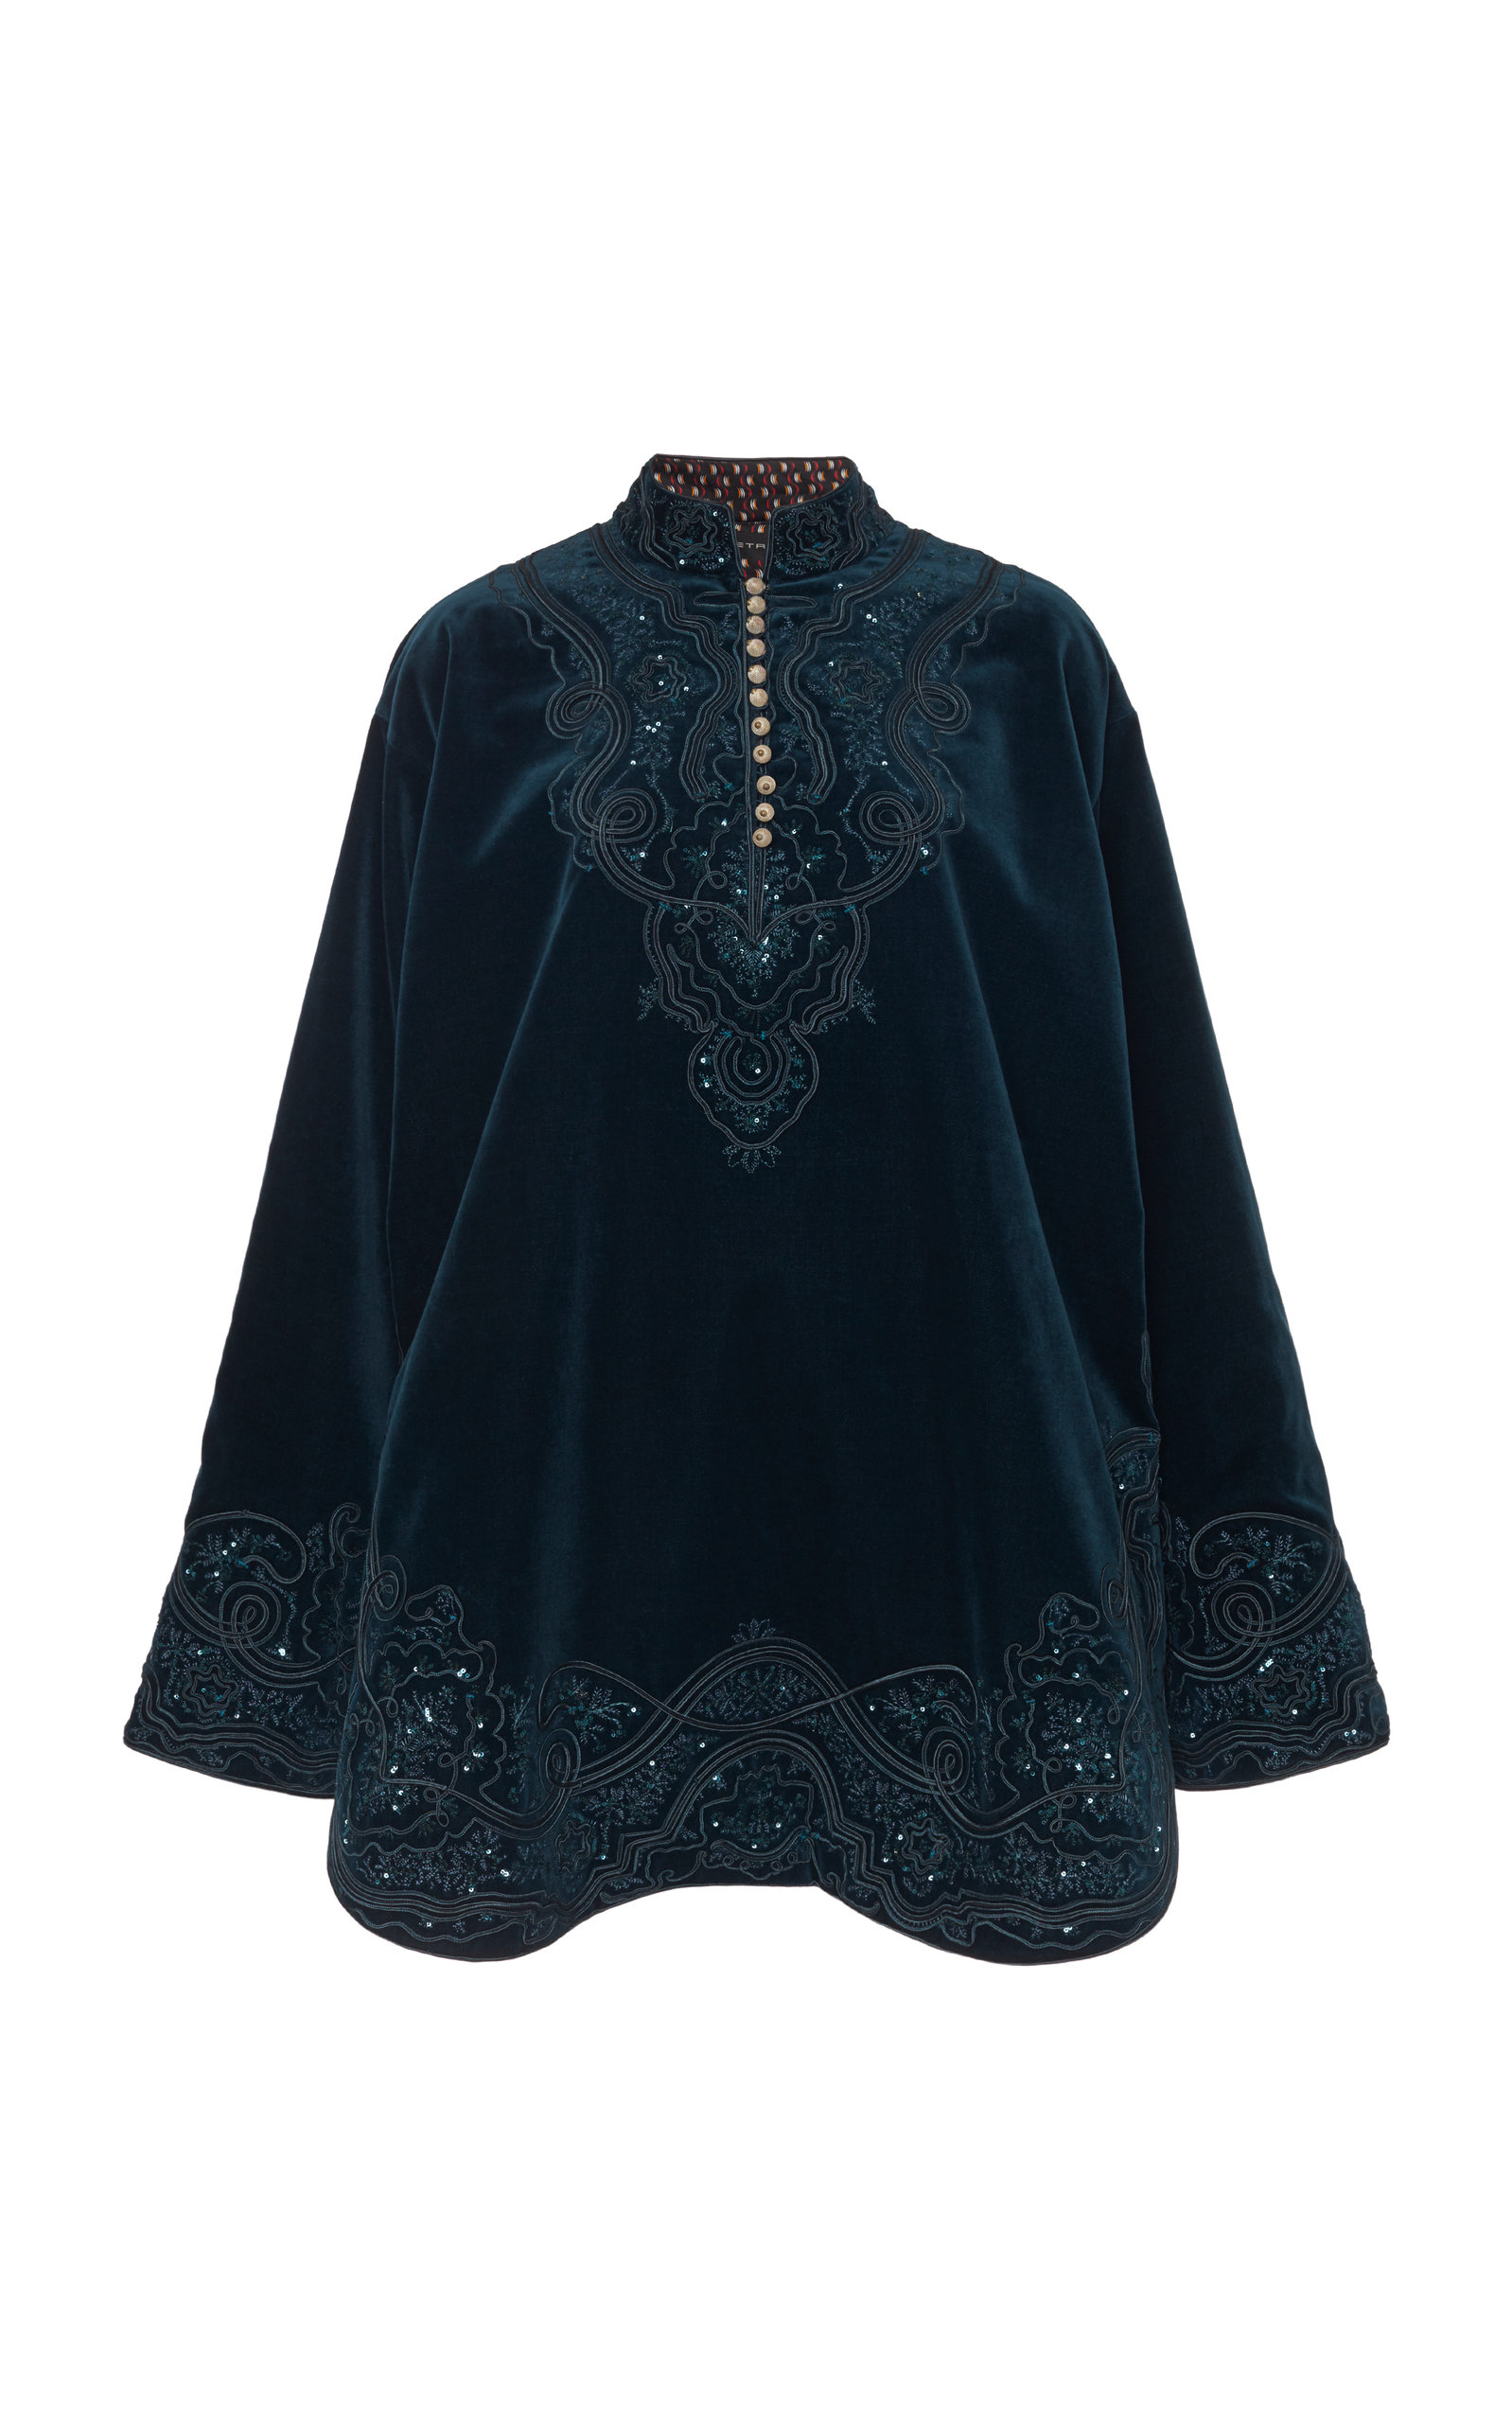 Buy Etro Button-Embellished Embroidered Velvet Mini Dress online, shop Etro at the best price